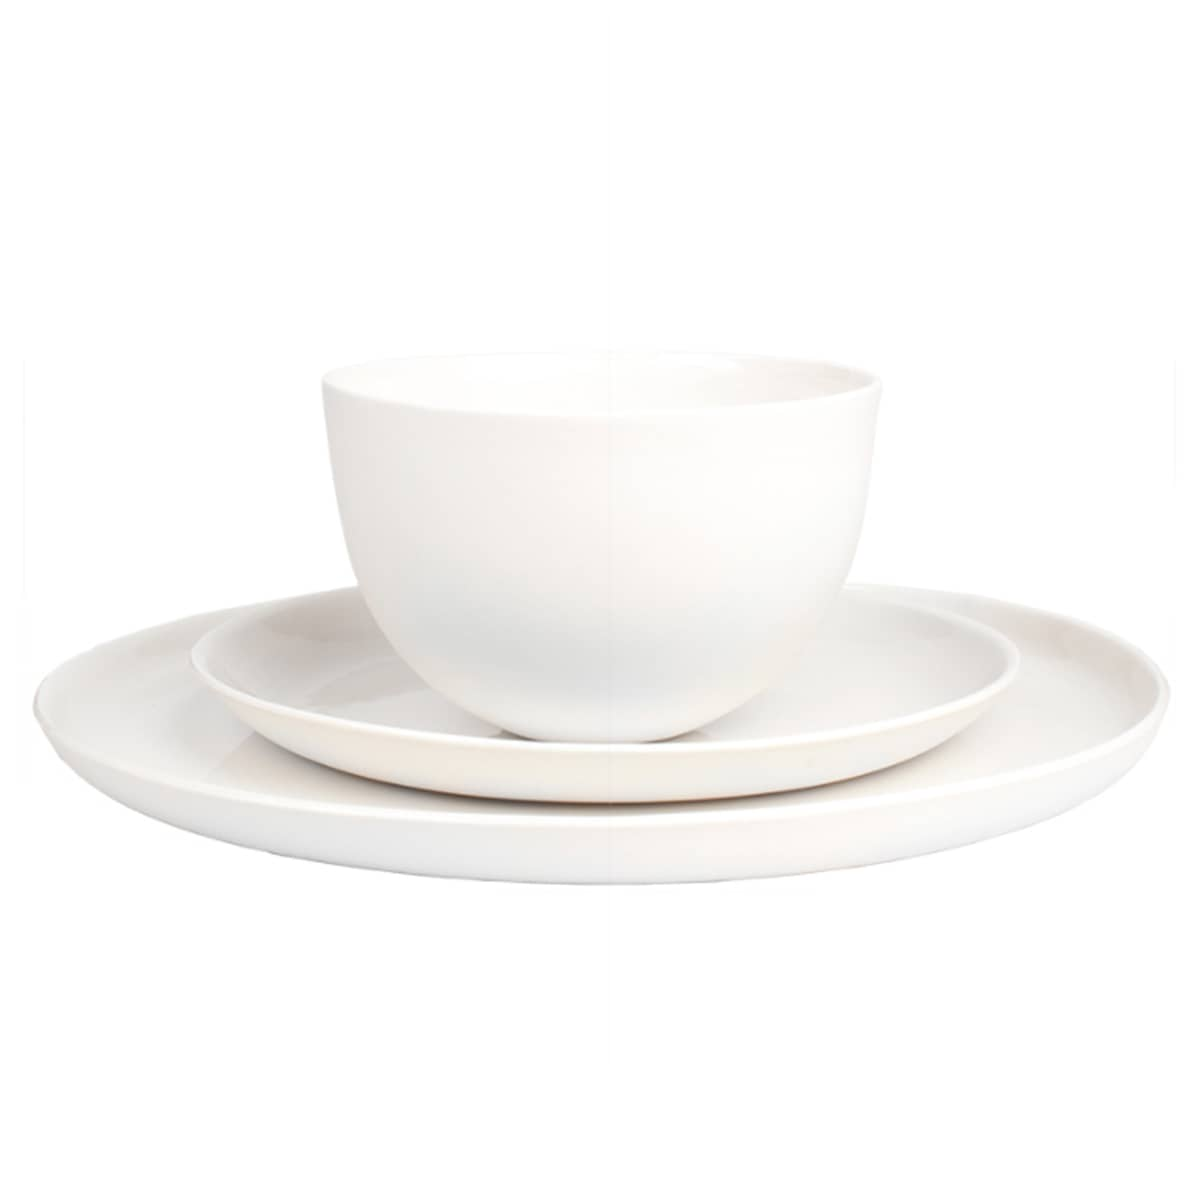 6 Dinnerware Sets That Will Outlast Your Design Whims: gallery image 3